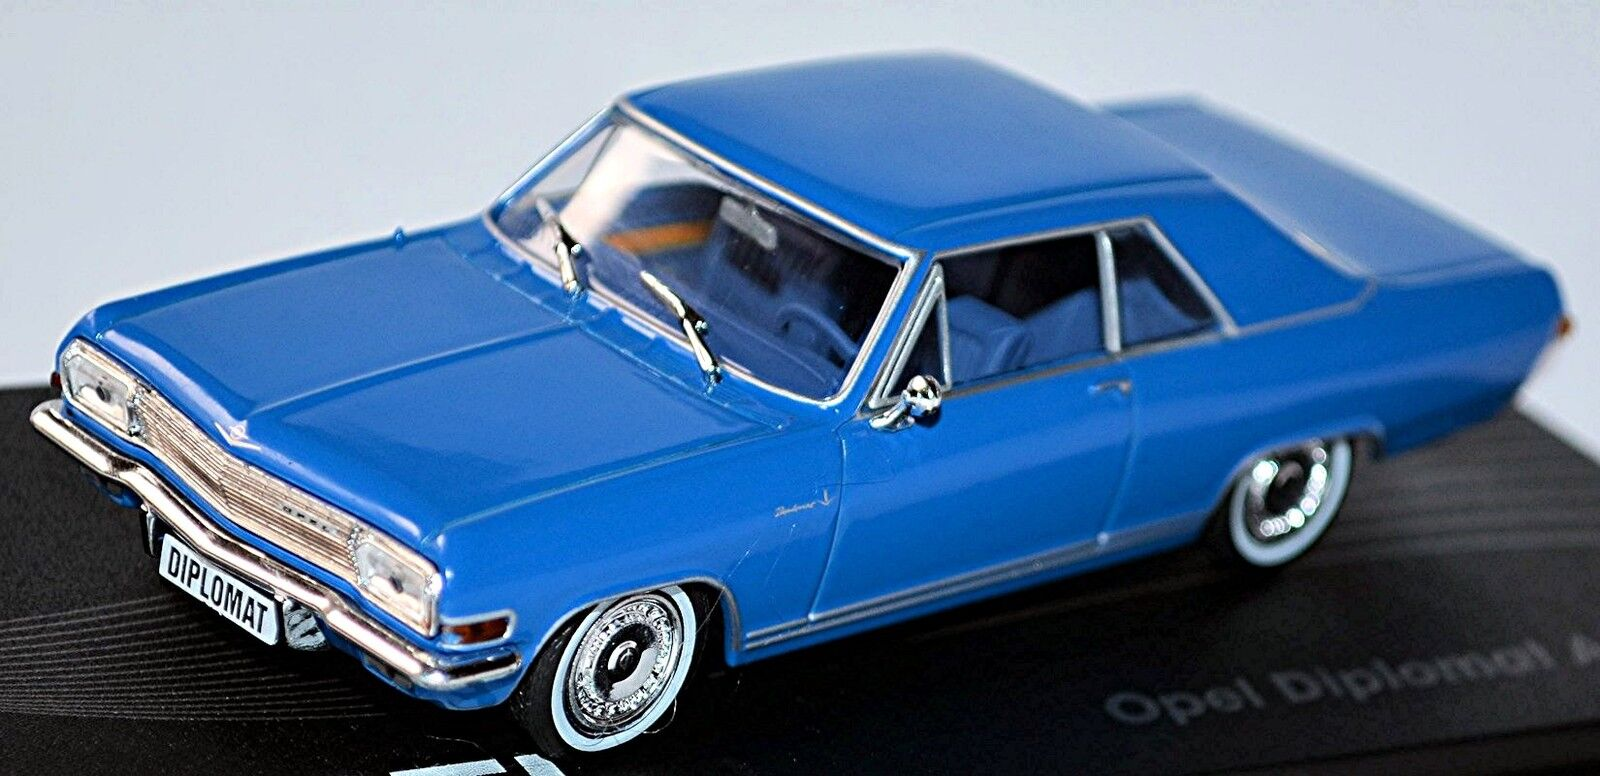 Opel Diplomat a Coupe V8 1965-67 bluee bluee 1 43